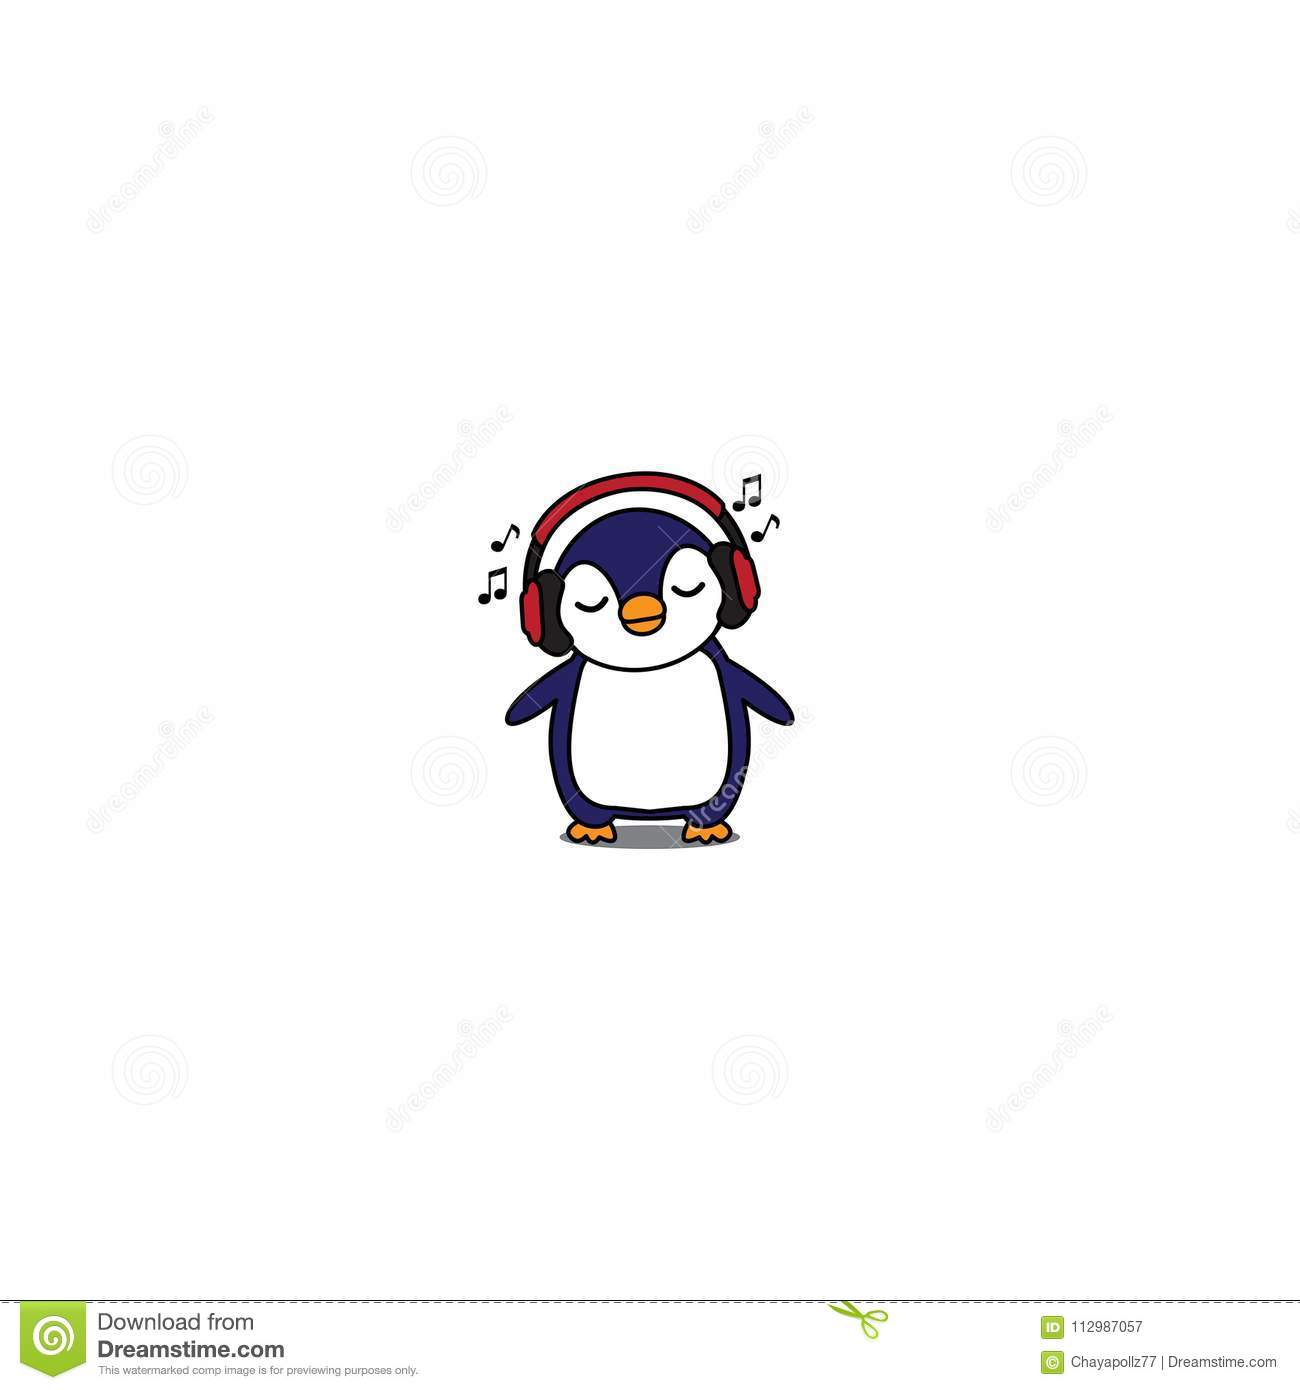 Cute penguin cartoon with red headphones, baby penguin listening music icon